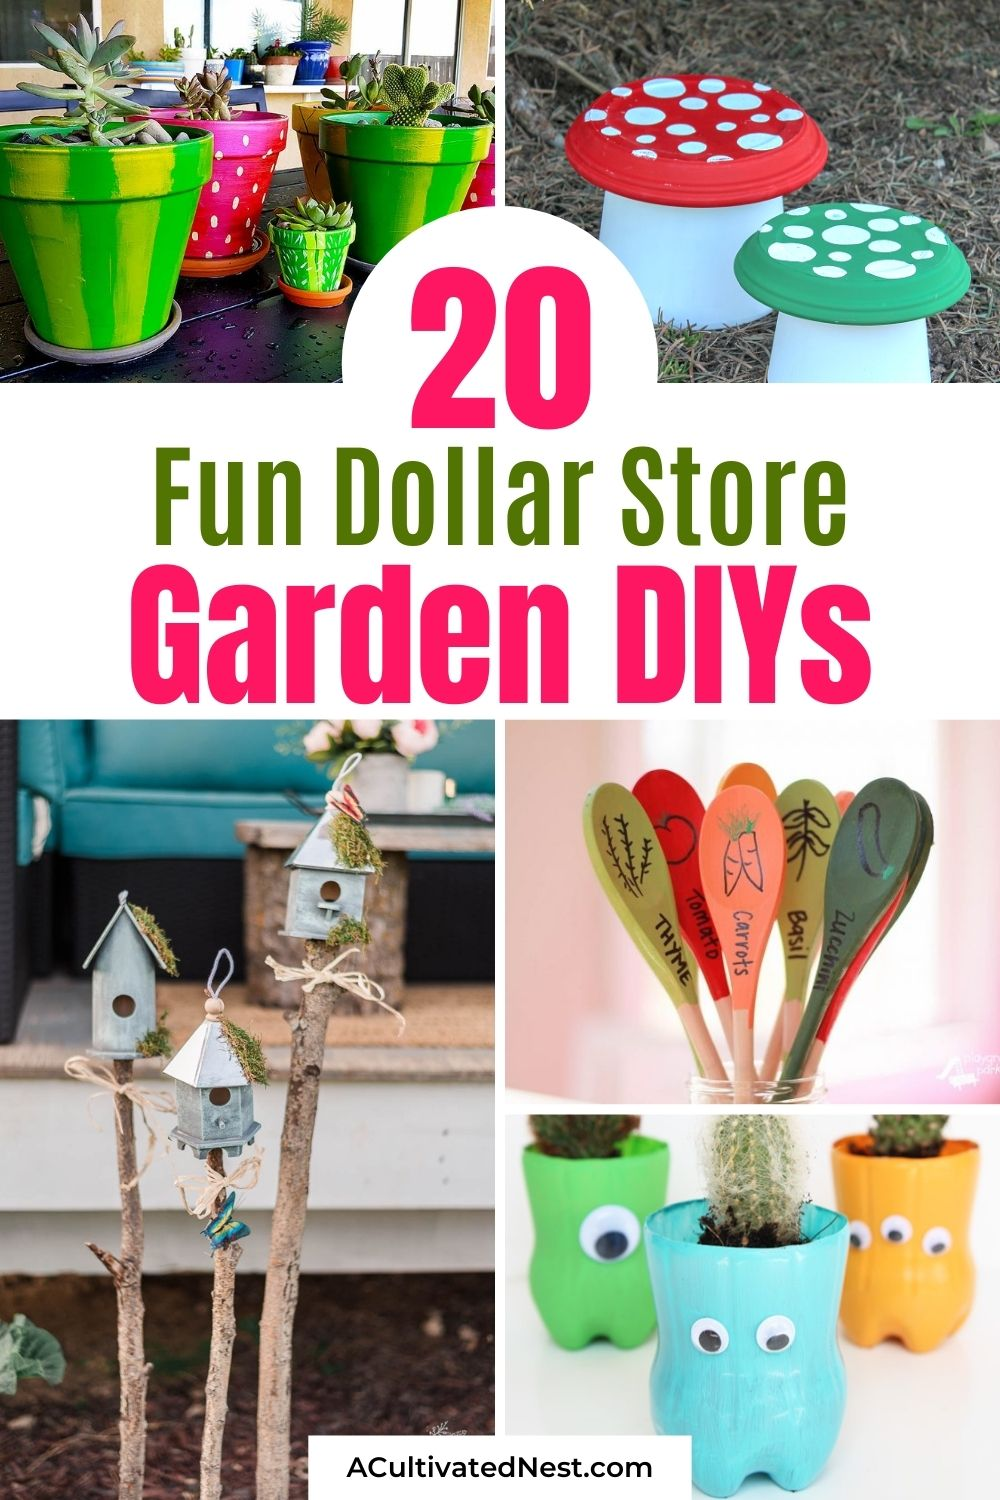 20 Brilliant Dollar Store Garden DIYs- If you want to add some fun to your garden on a budget, you have to try some of these brilliant dollar store garden DIYs! They're all easy to do, and will make your garden look great!   #diyProjects #gardenCraft #dollarStoreDIYs #diyProjects #ACultivatedNest